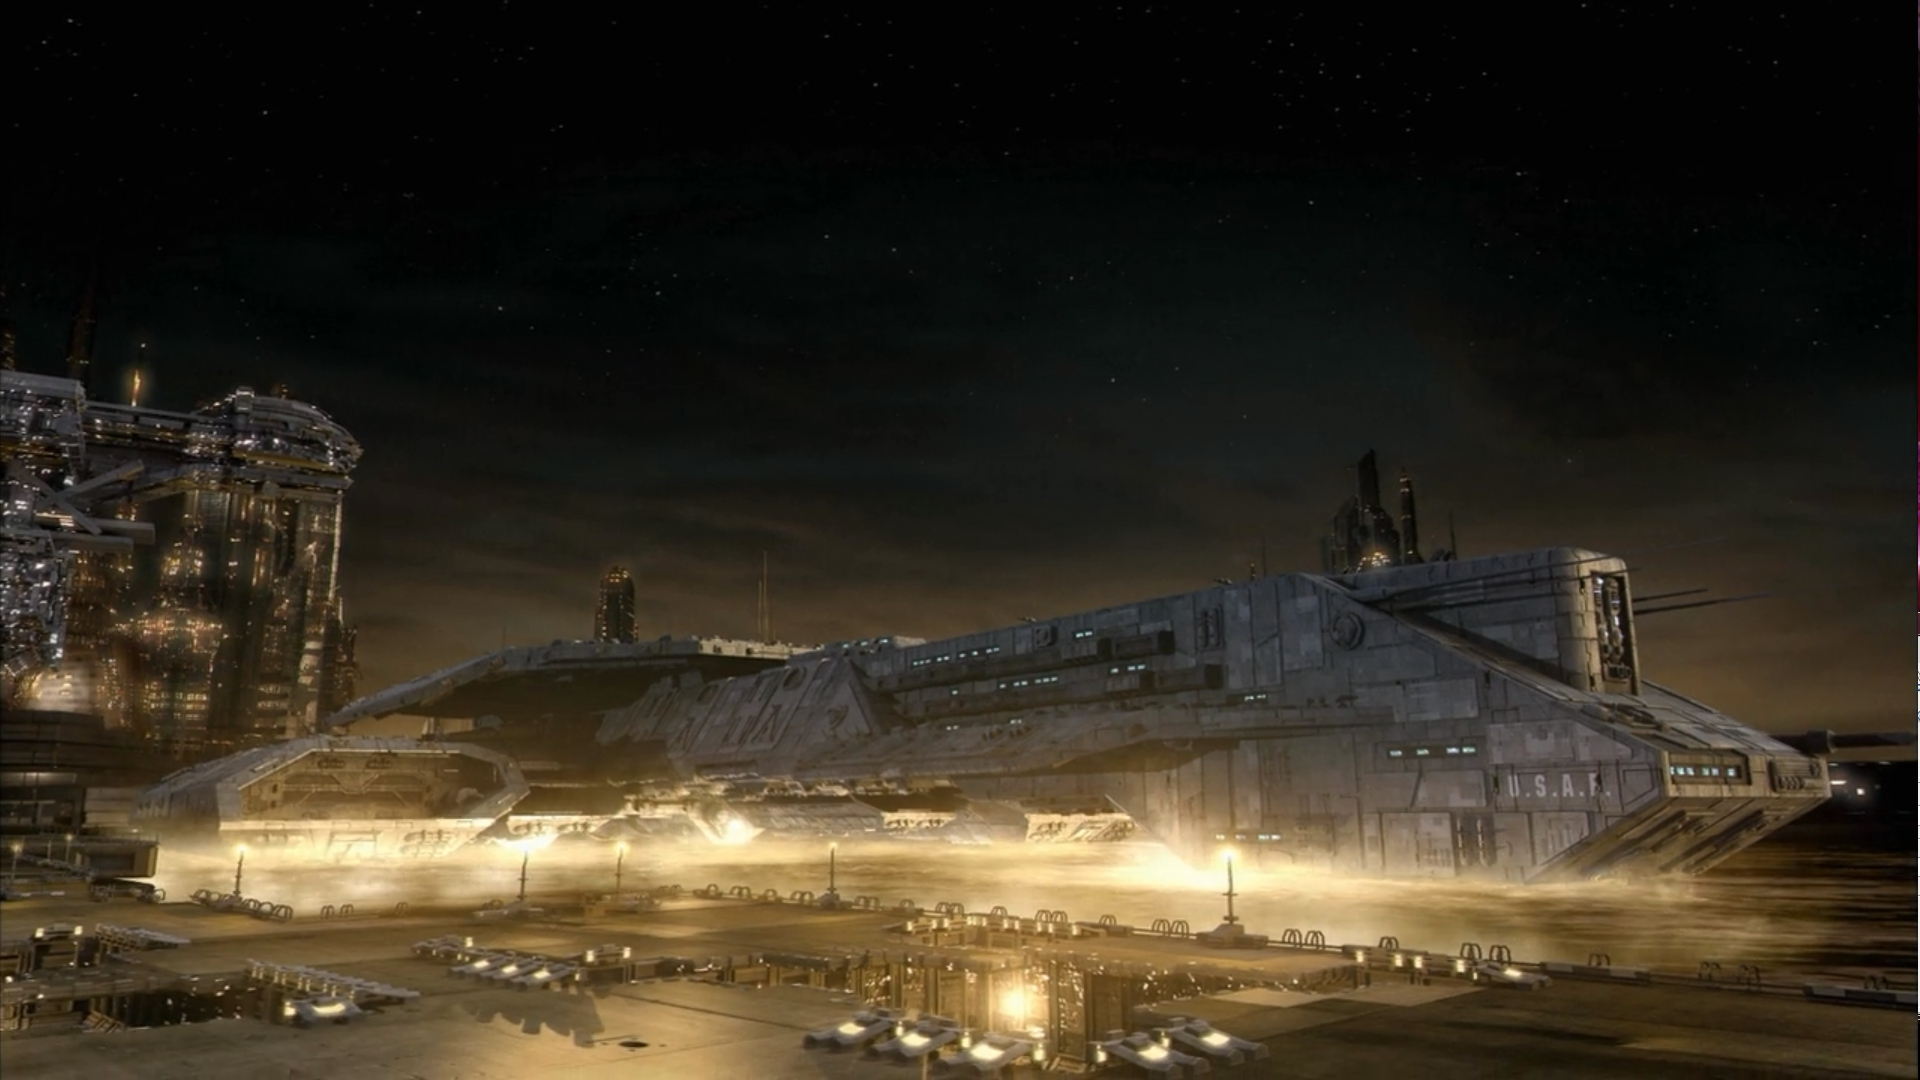 us drones at night with Game Starts In X3 Sgu on Gray Eagle Mq 1 likewise 10 Facts Homeless Usa also Rpg 7 anti Tank grenade rocket launcher technical data sheet specifications information description besides Shilin Night Market moreover Game Starts In X3 Sgu.